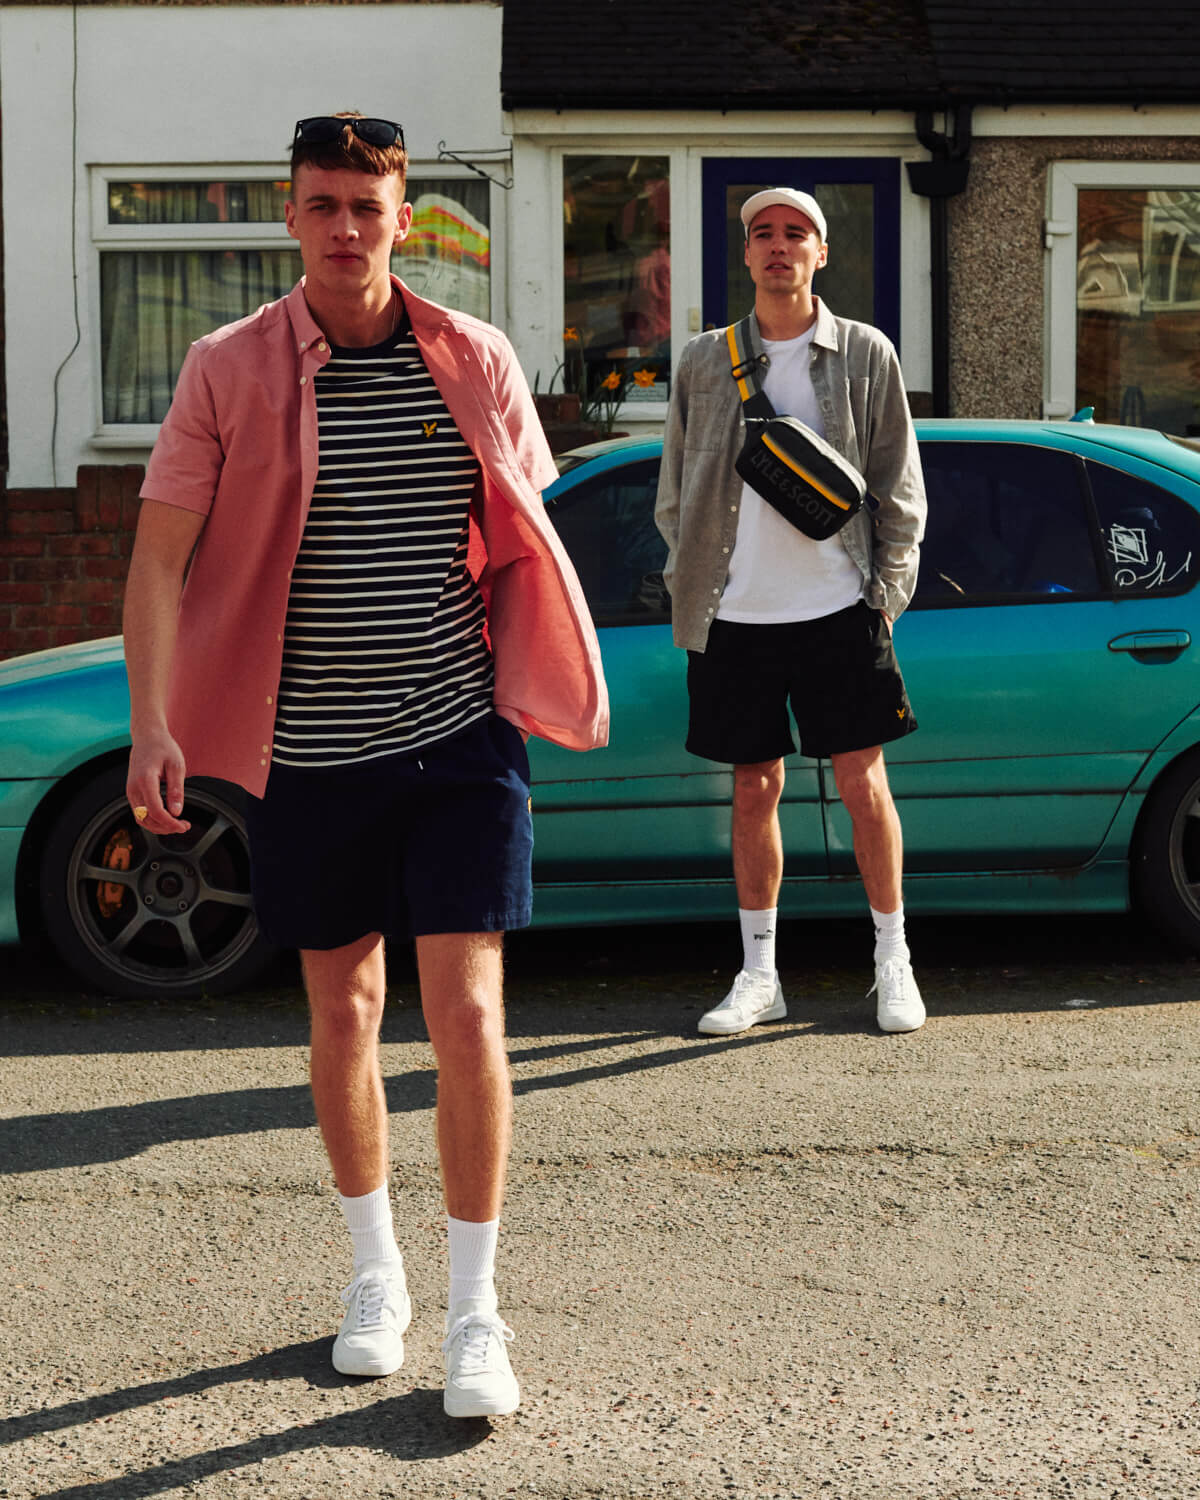 Two lads stand in road, by lifestyle photographer Tim Cole